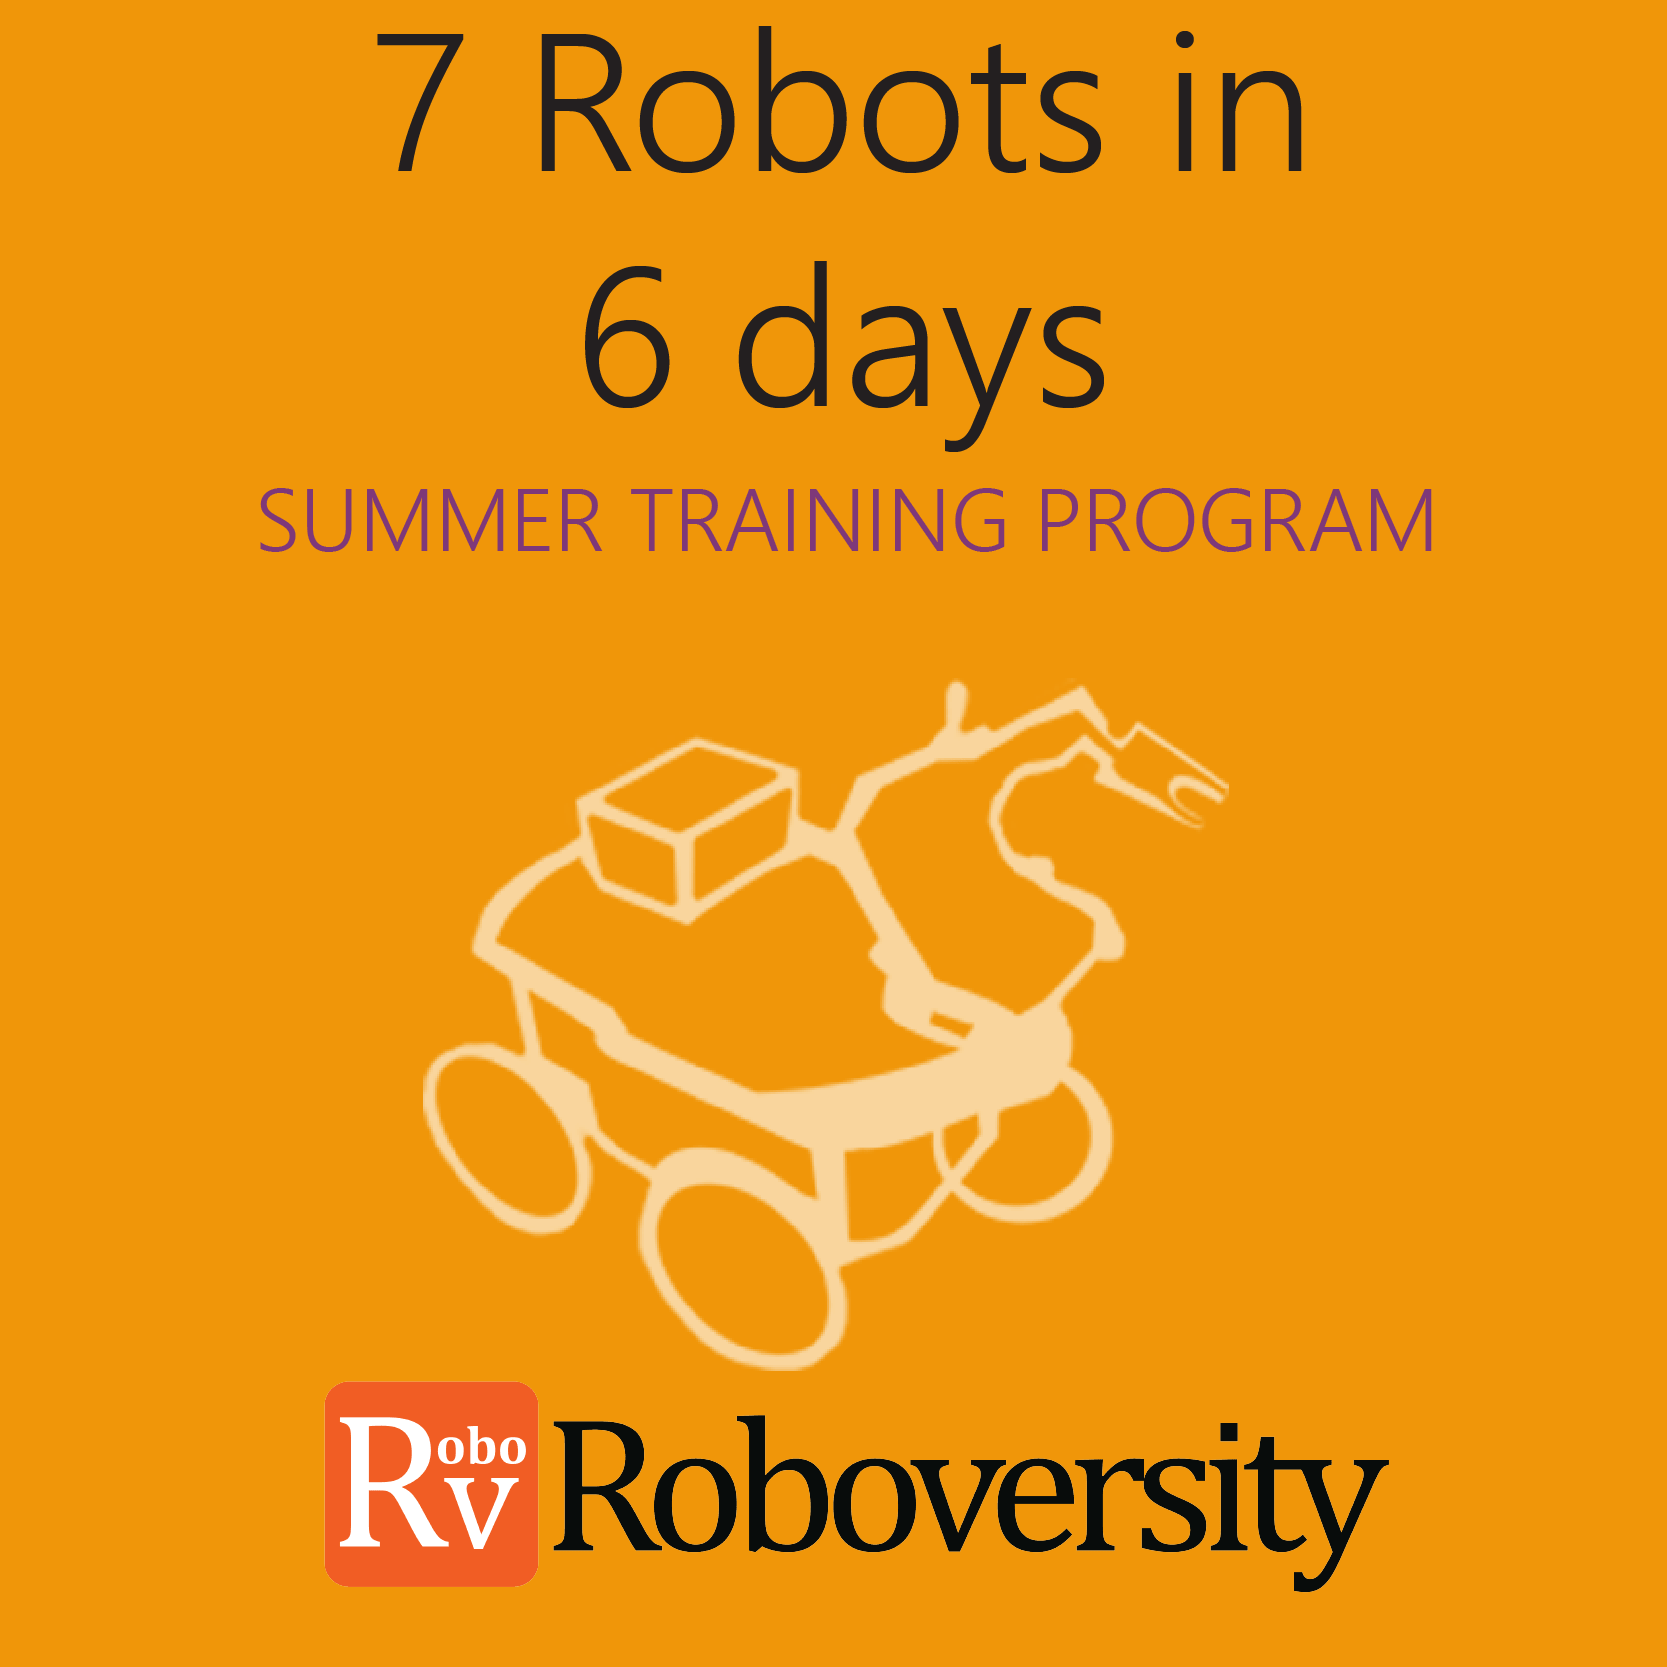 Summer Training Program in Robotics - 7 Robots in 6 Days in Chennai